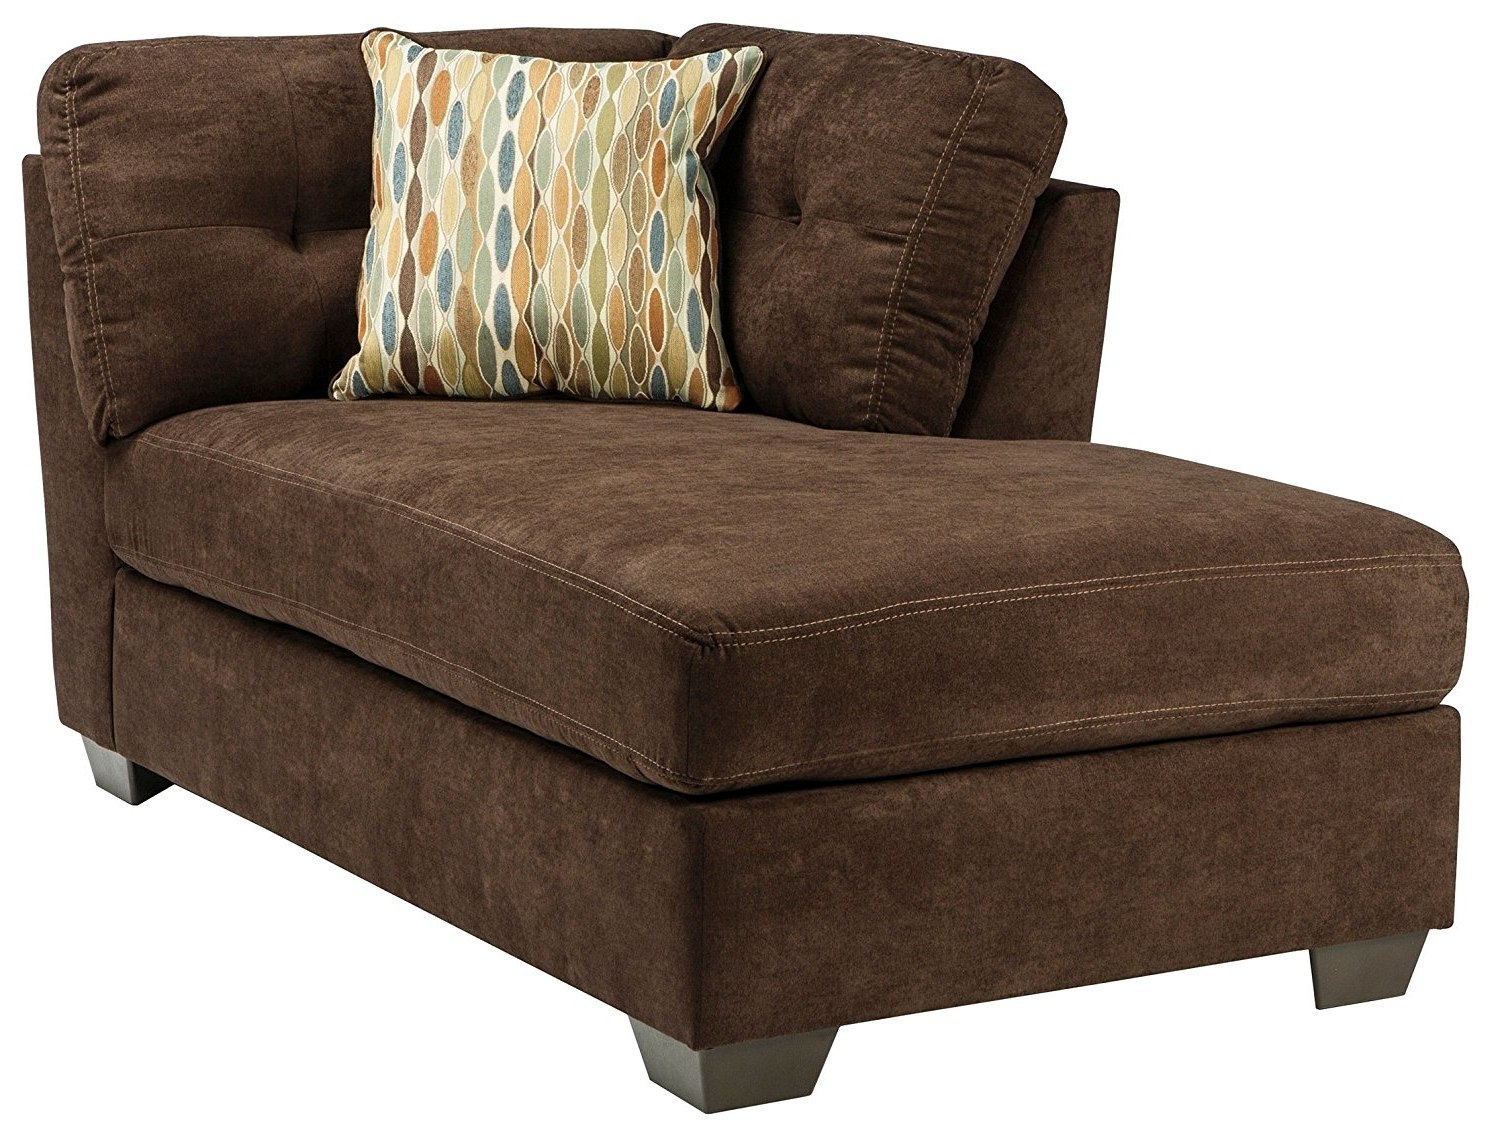 Most Popular Amazon: Ashley Delta City Left Corner Chaise Lounge In Inside Ashley Chaise Lounges (View 9 of 15)